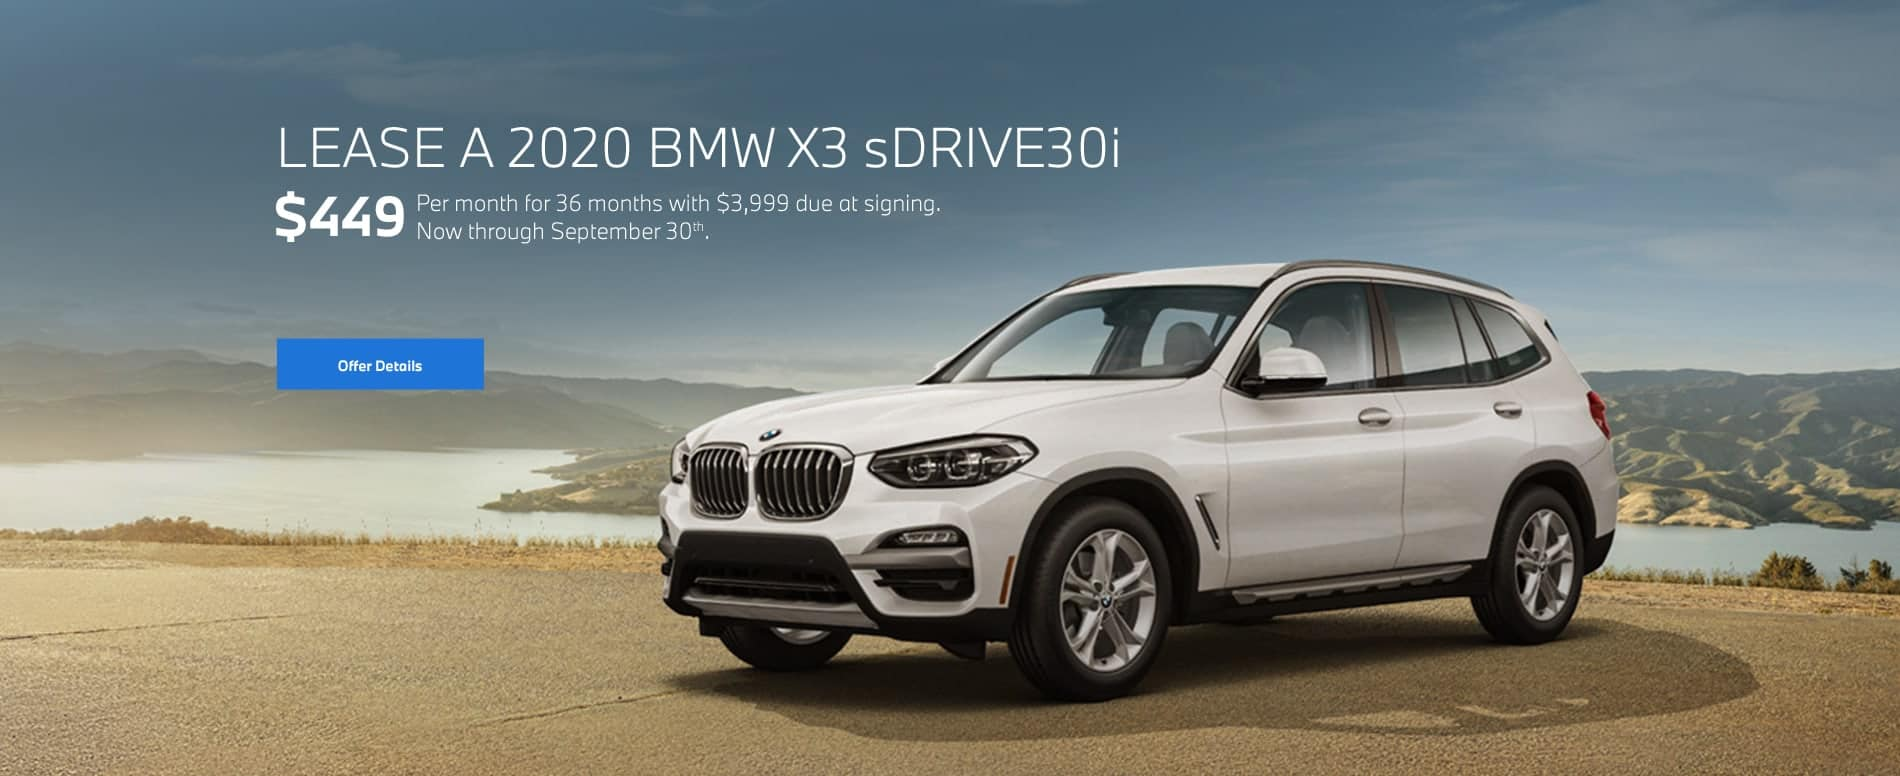 2020 BMW X3 xDrive30i for $449/mo